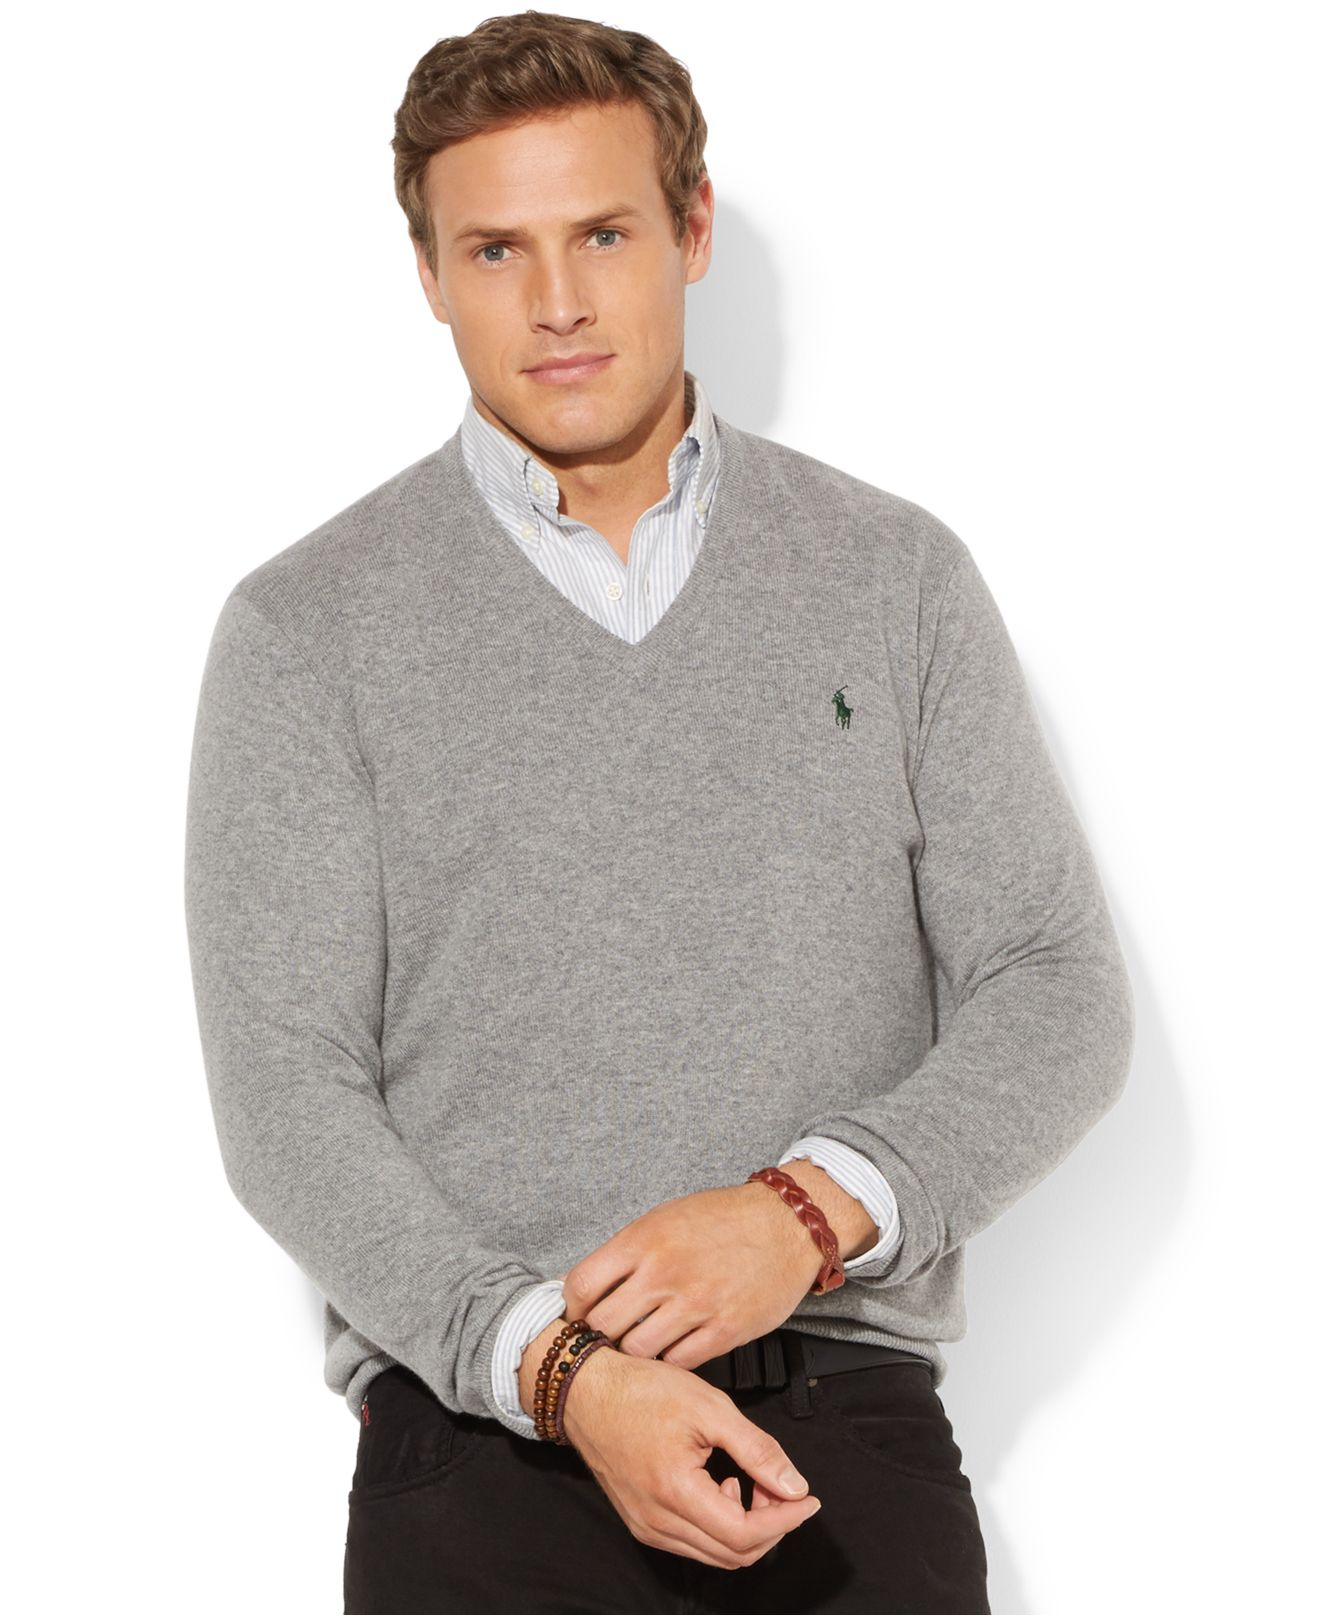 62a18747e1a2 Lyst - Polo Ralph Lauren Big And Tall Merino Wool V-Neck Sweater in ...